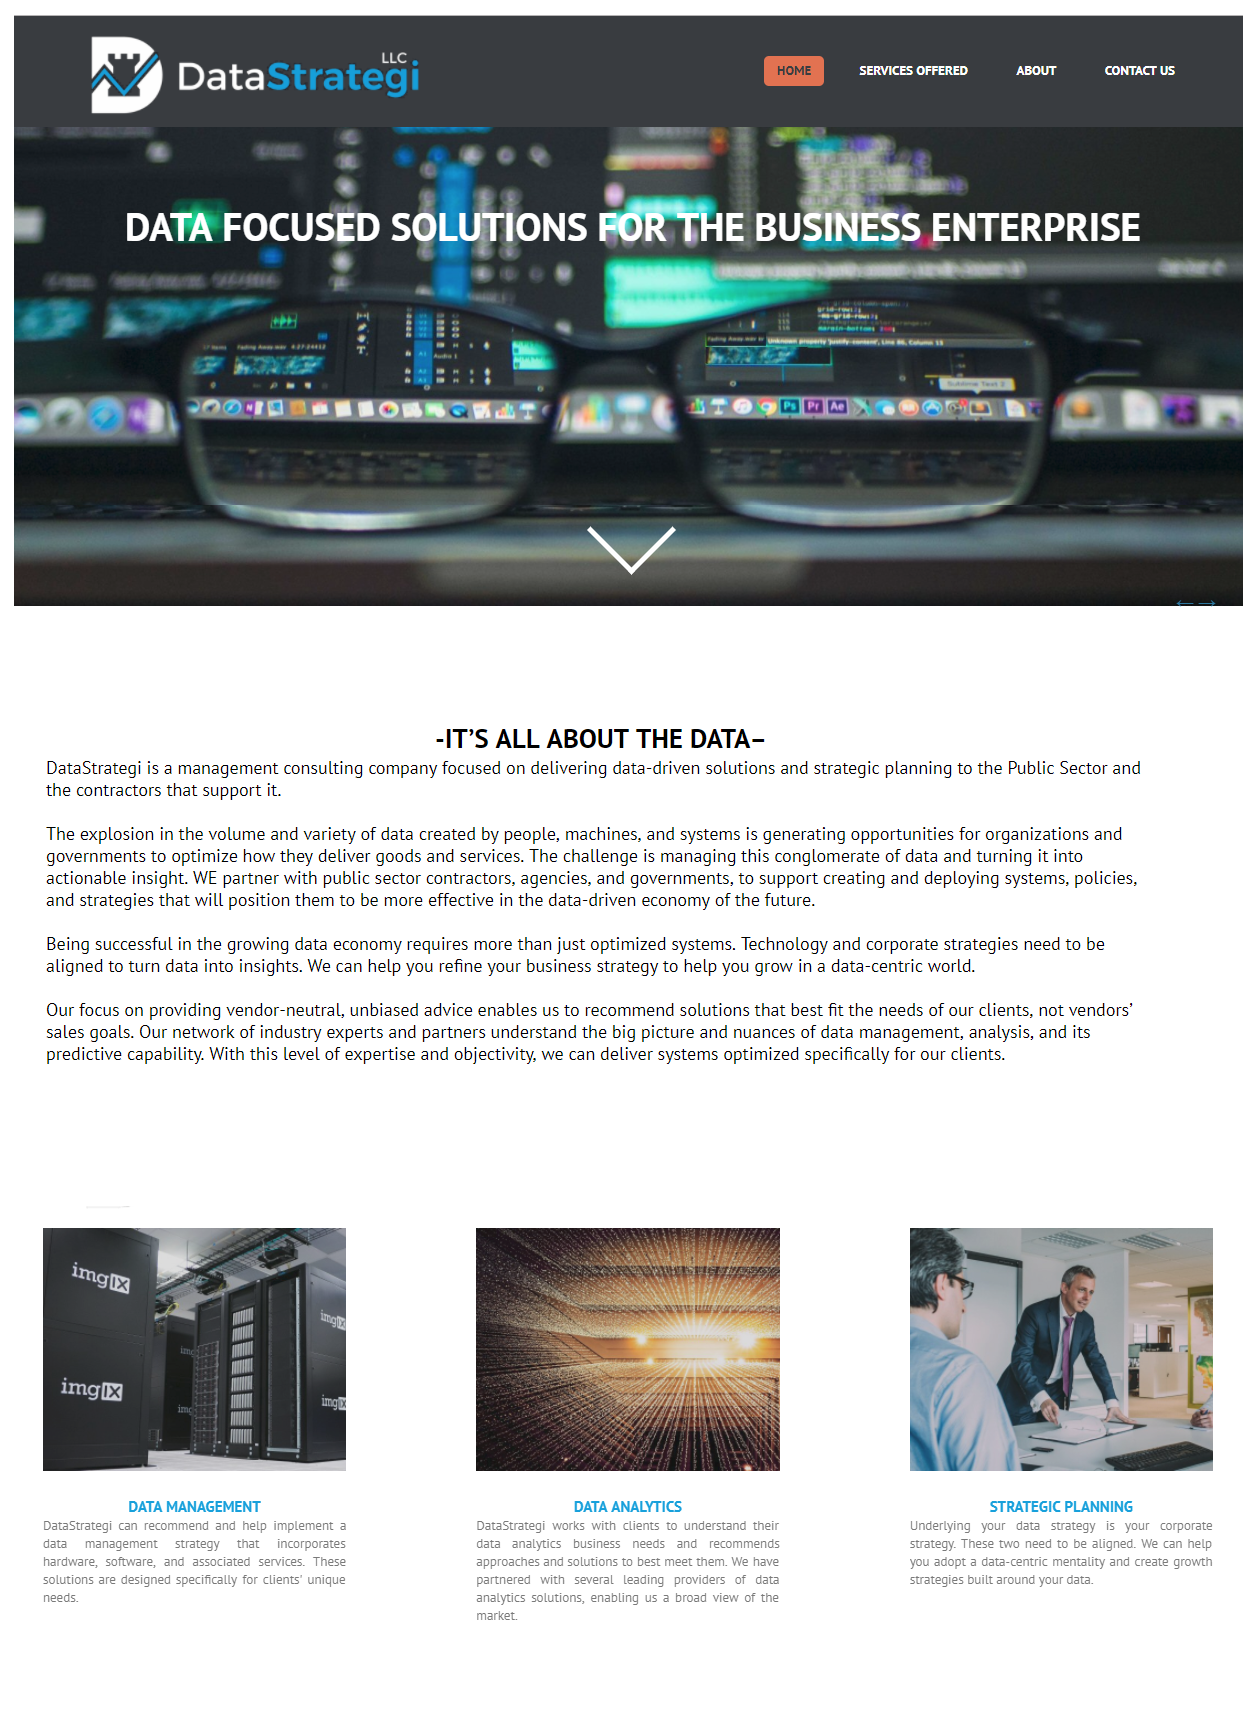 DataStrategi LLC Website